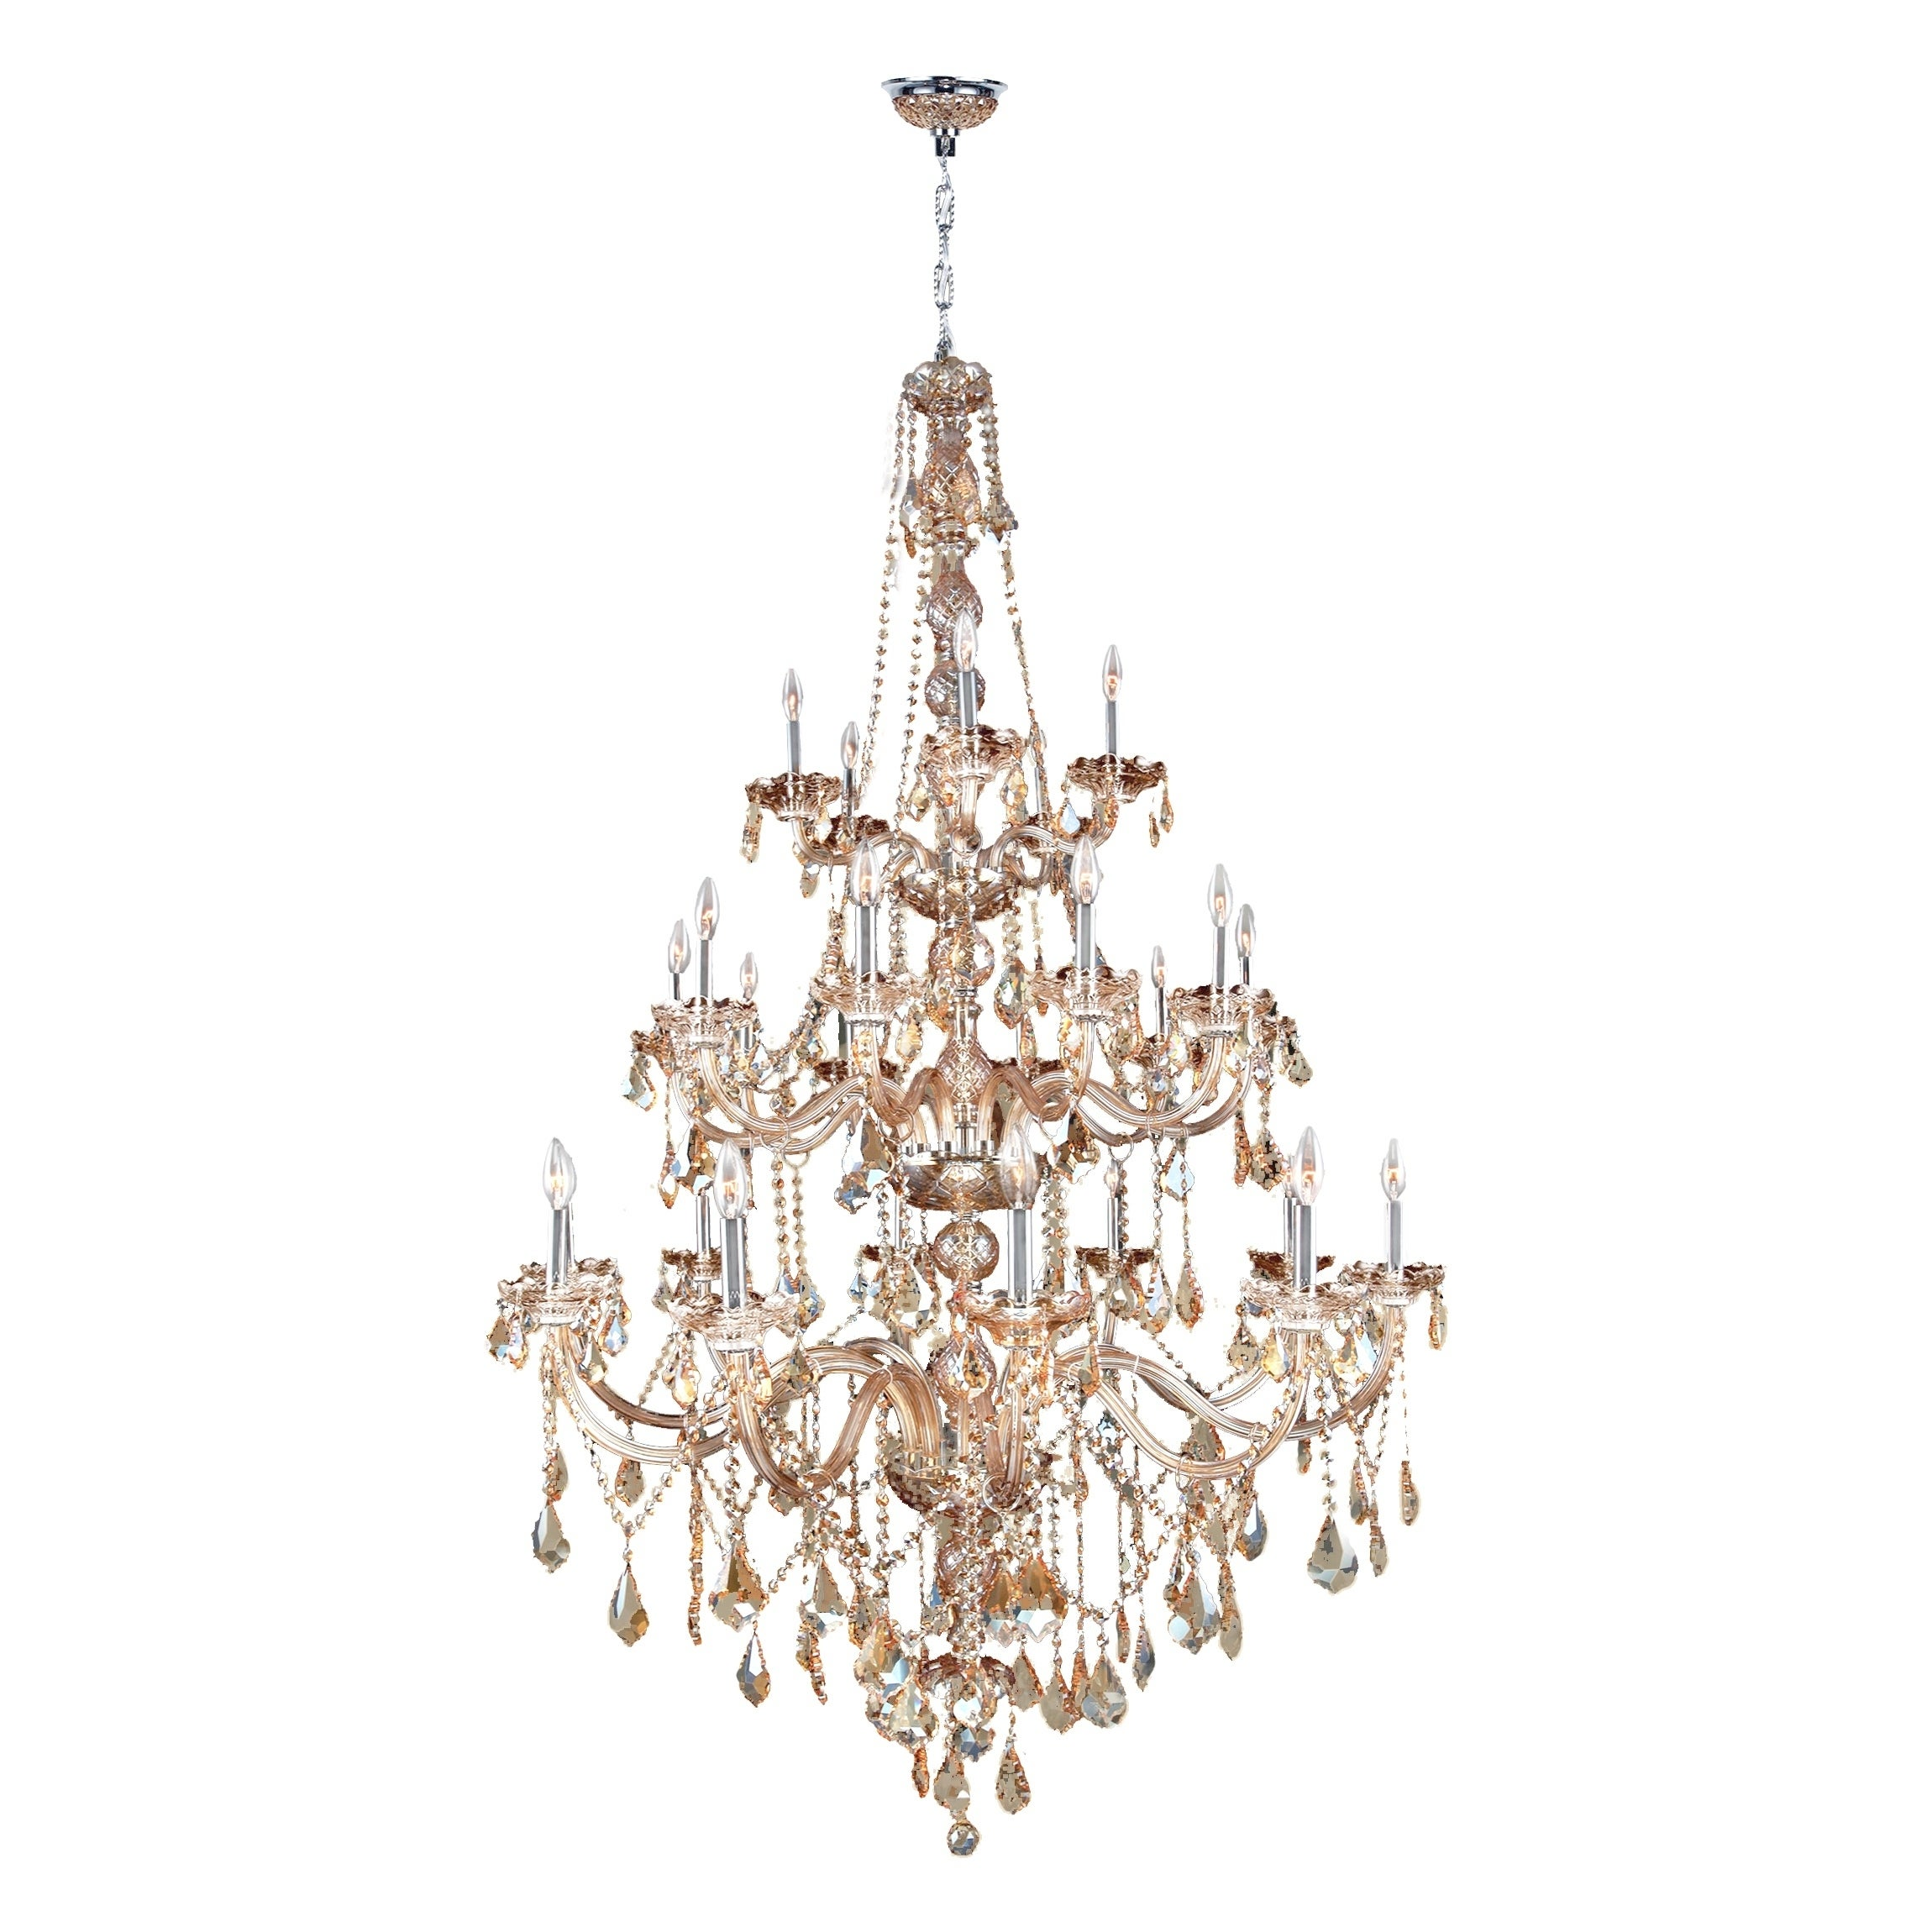 Provence collection 25 light chrome finish and amber crystal provence collection 25 light chrome finish and amber crystal chandelier three 3 tier free shipping today overstock 17447979 aloadofball Image collections